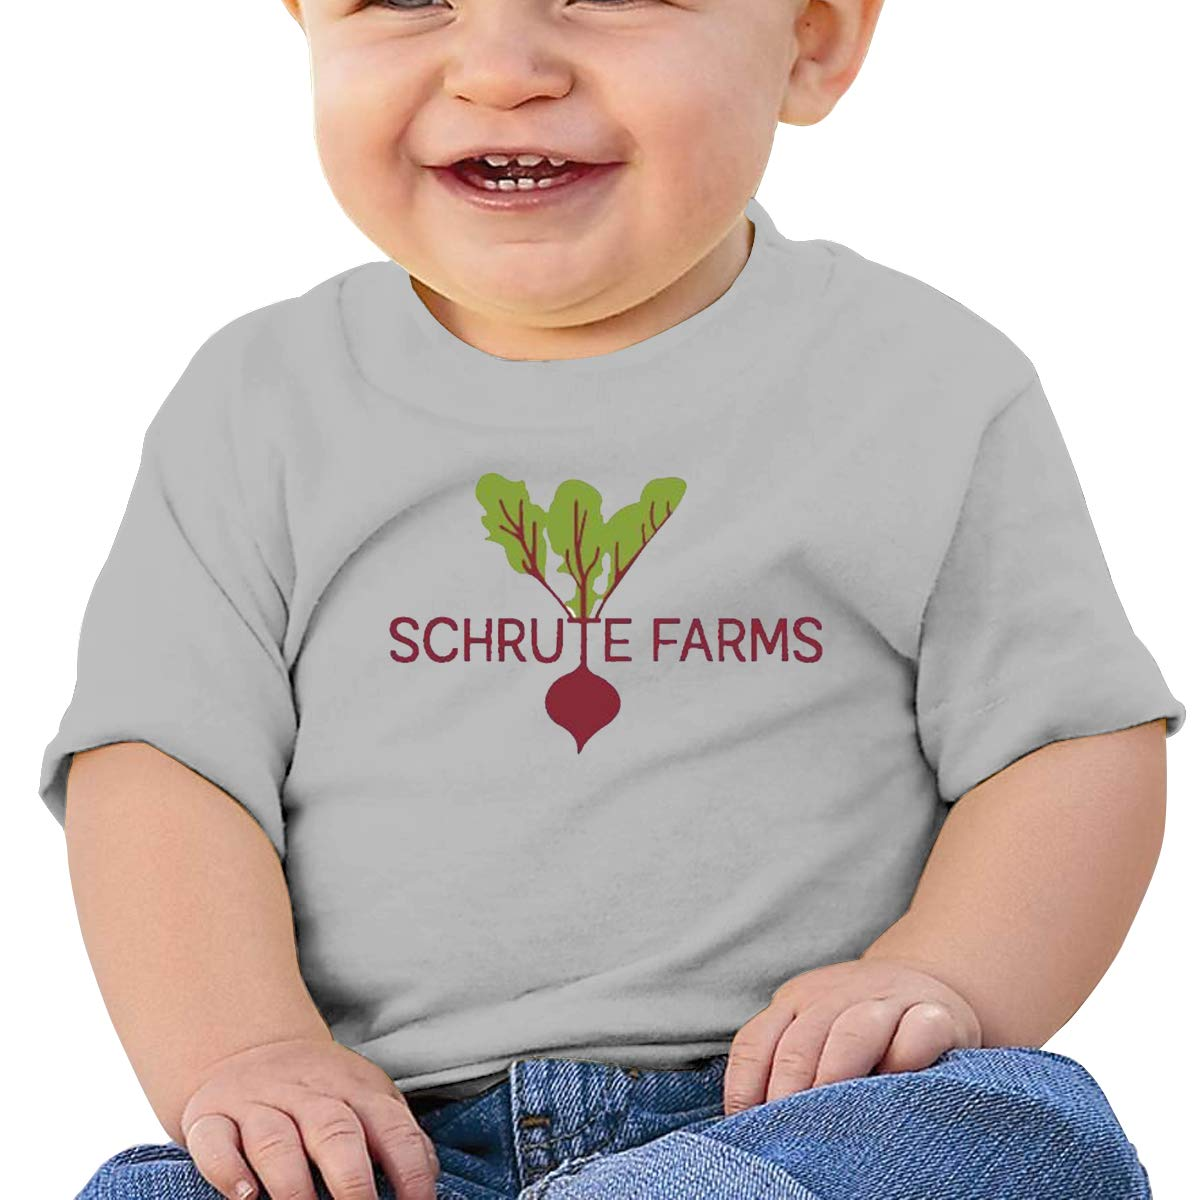 DONGLY 6-24 Month Baby T-Shirt Schrute Farms Nordic Winter Personality Wild Gray